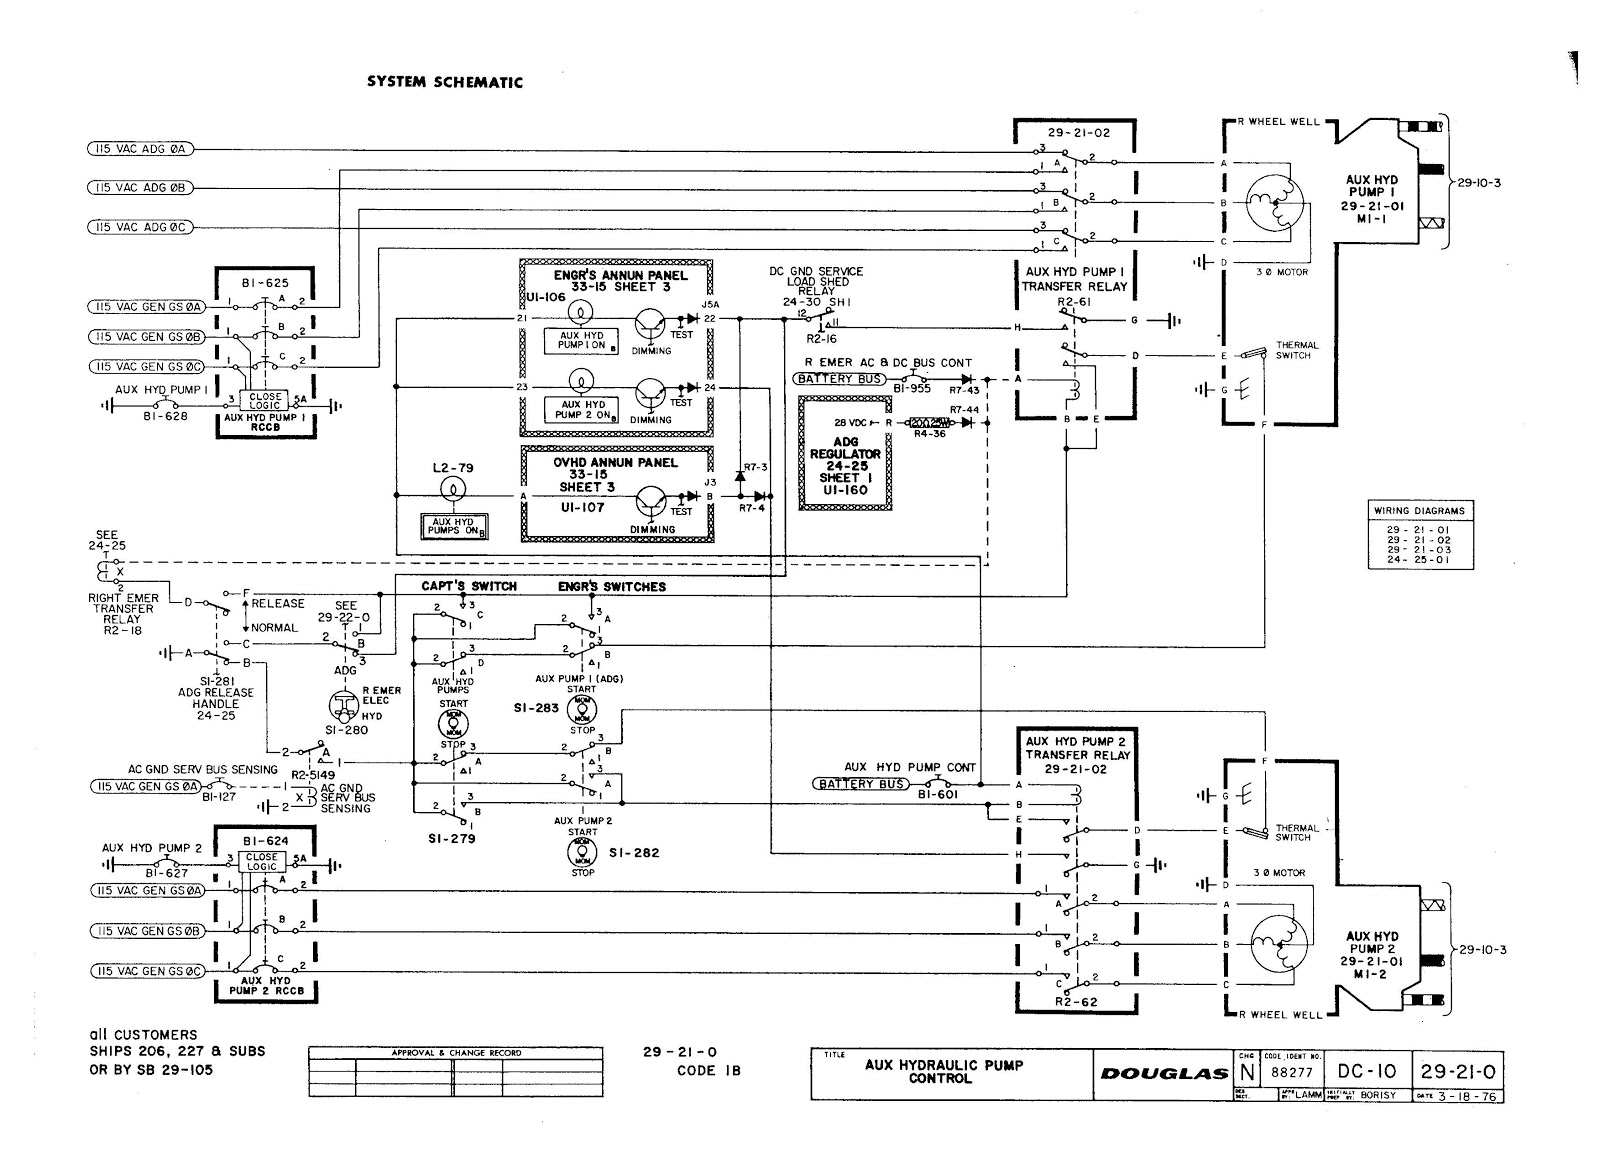 Schematic+diagram+dc+10+hydraulic+001 part 66 virtual school aircraft wiring and schematic diagrams Motor Control Schematic Diagram Symbols at edmiracle.co